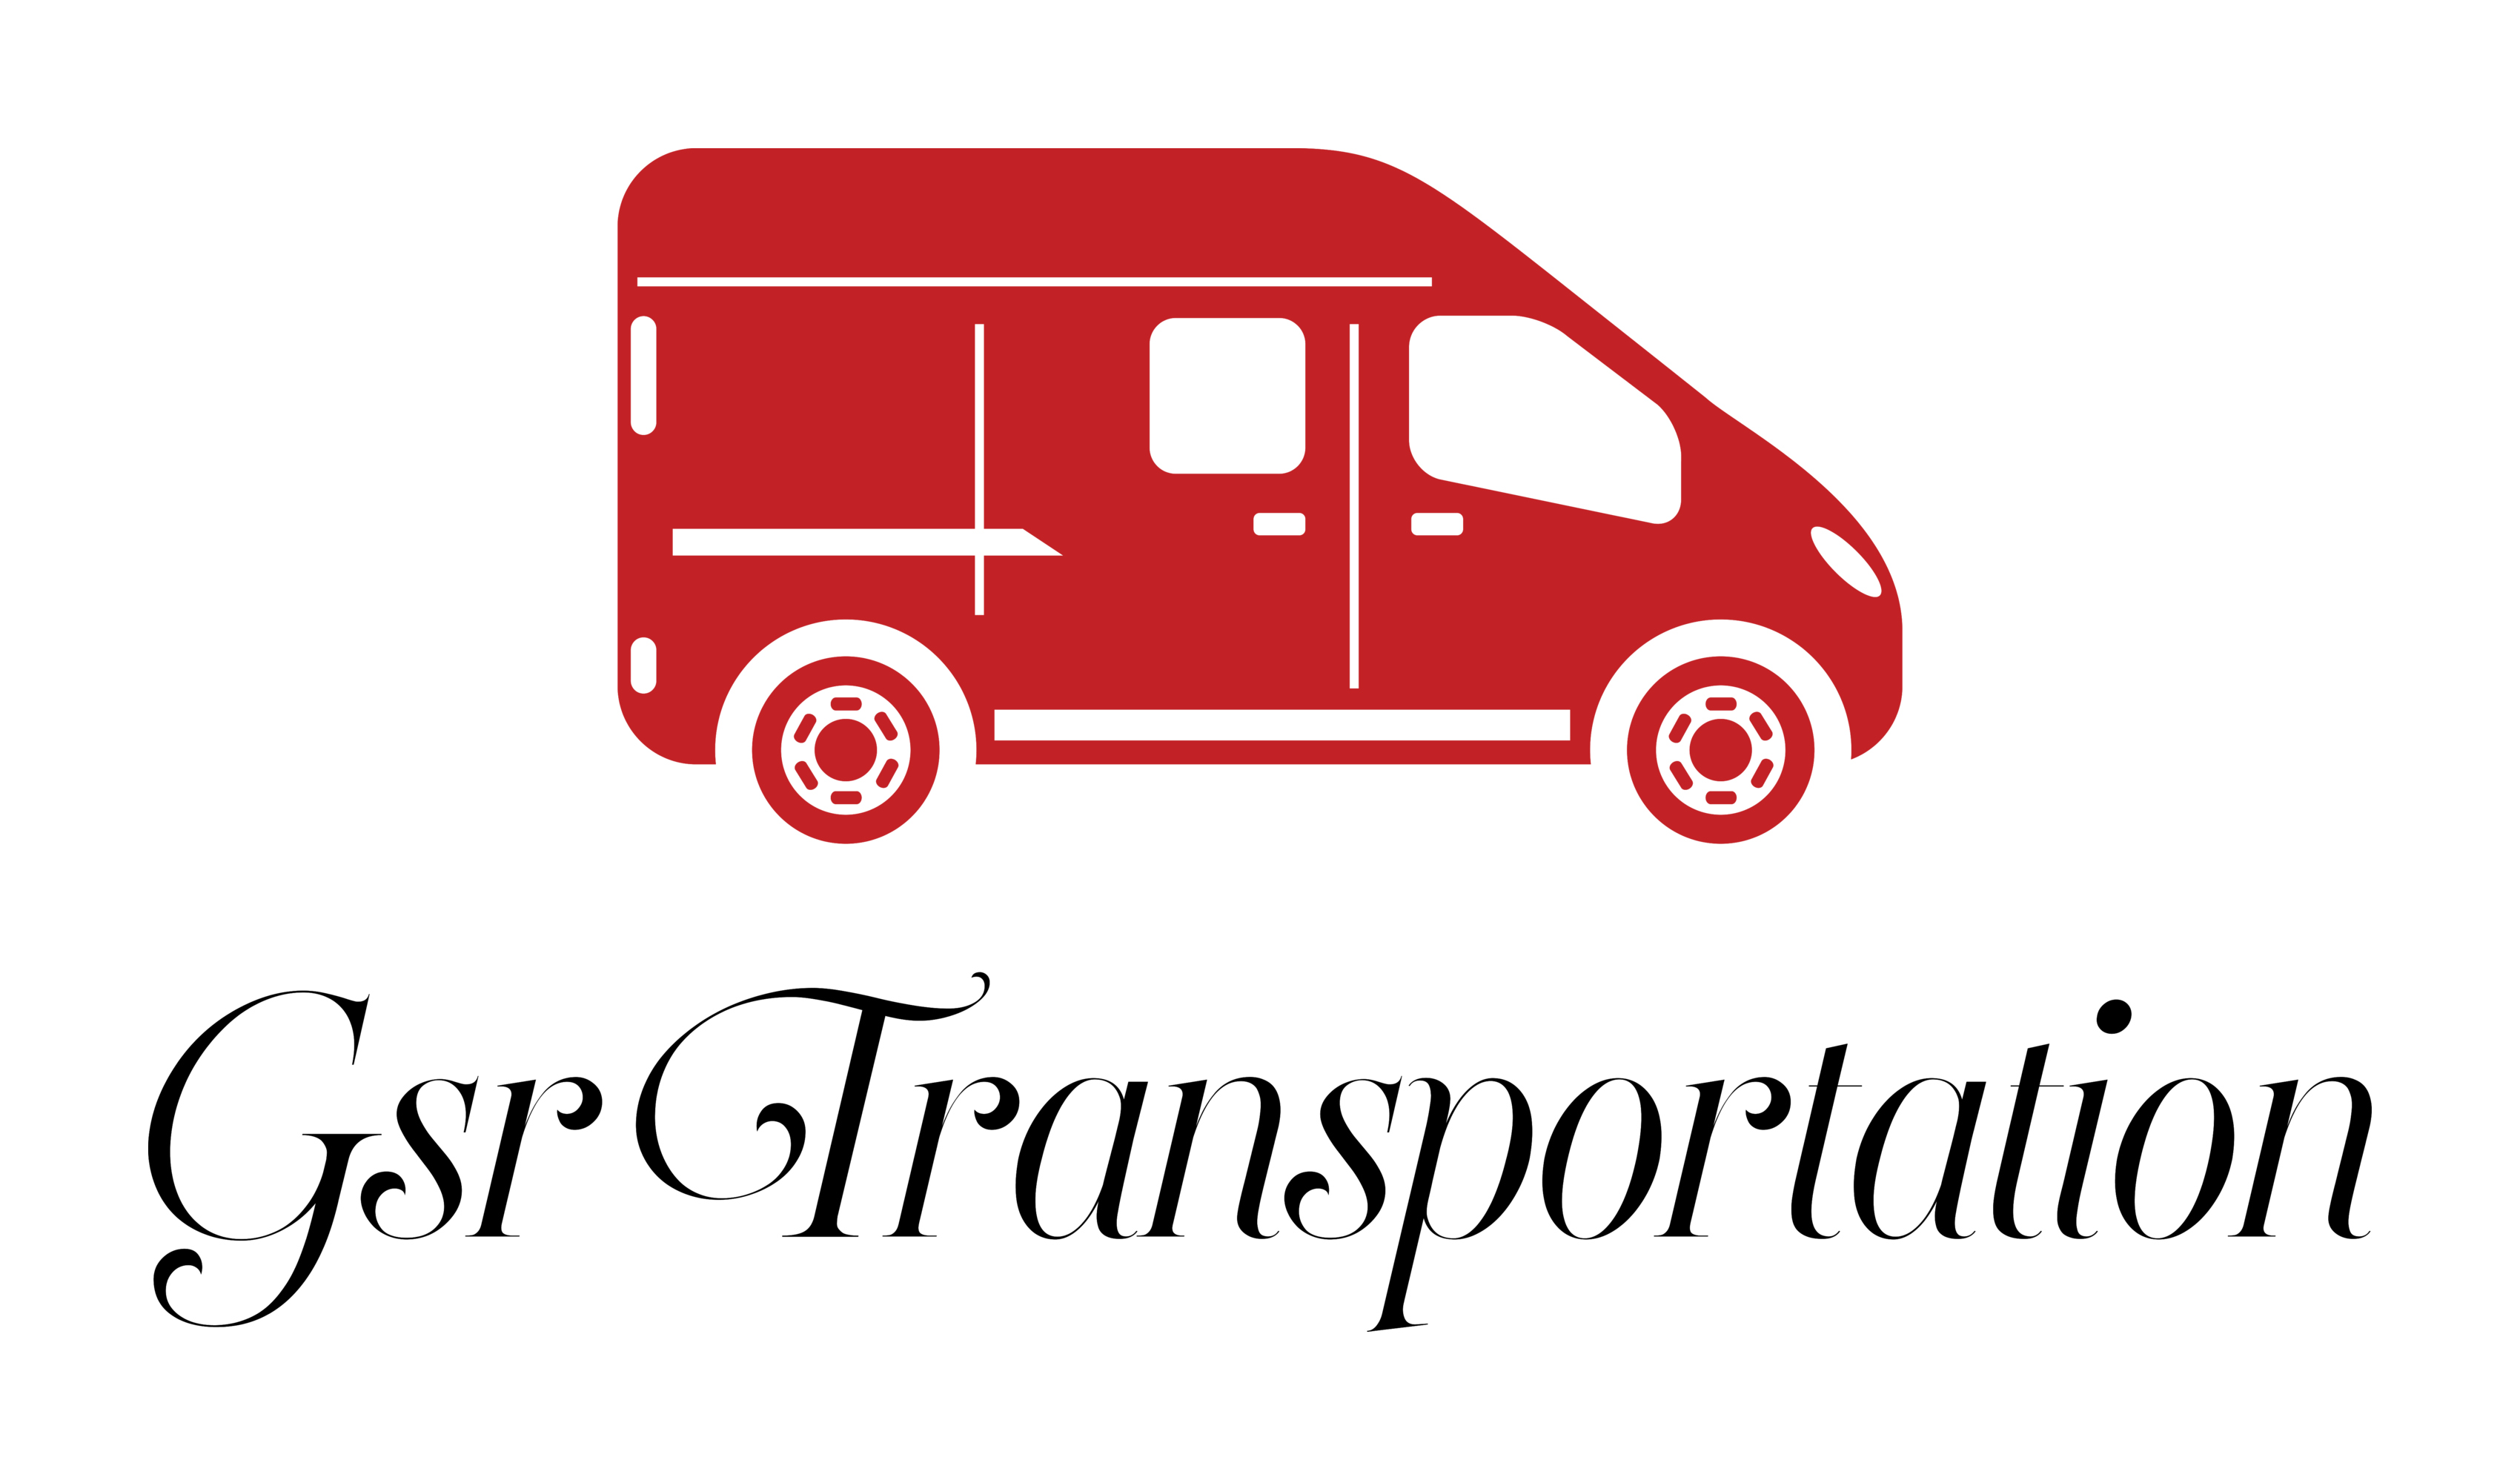 Find couriers and truckers. Envelope clipart interoffice mail